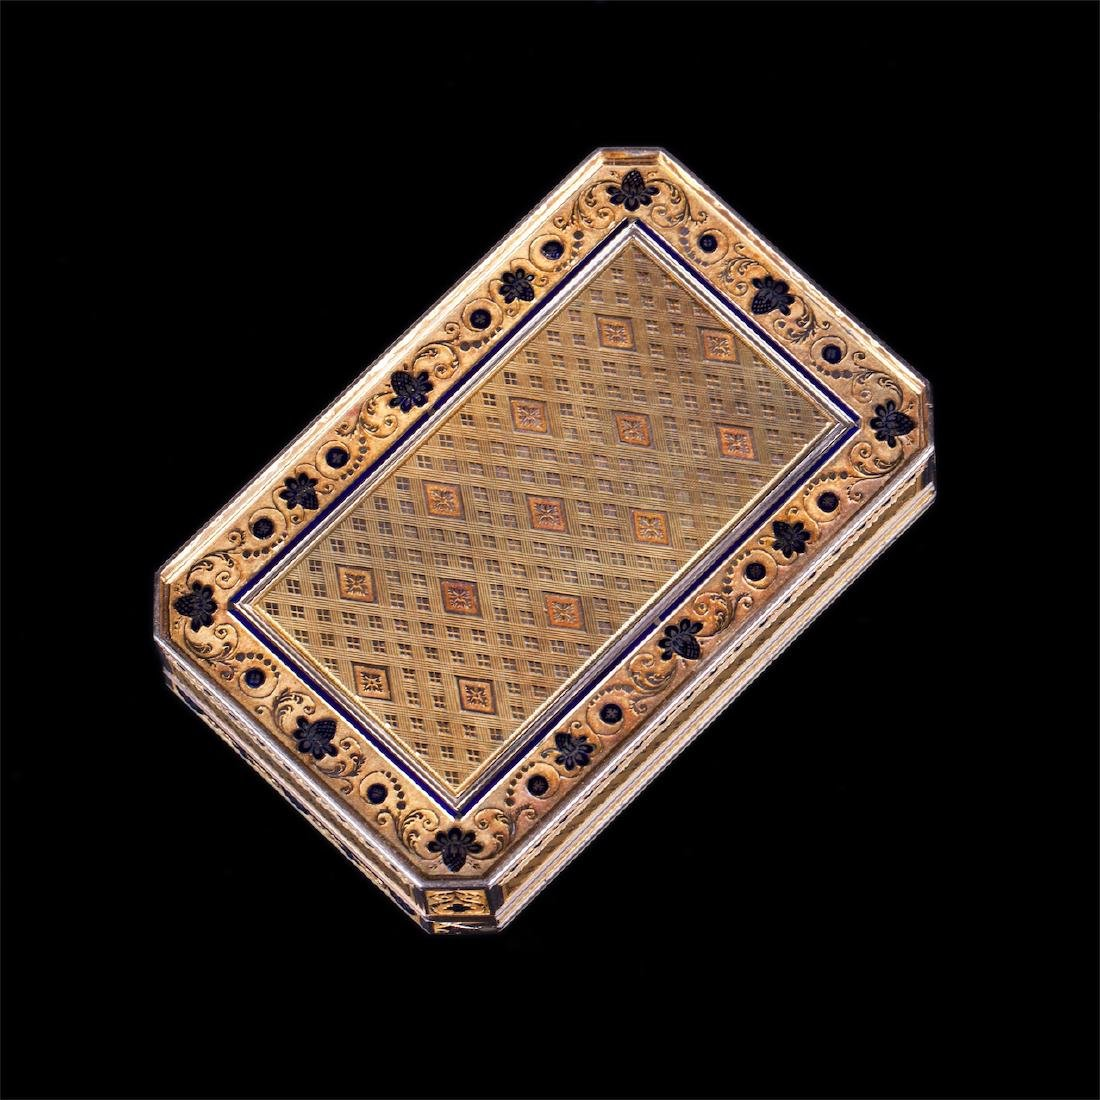 18th century Swiss gold snuff box with harp - 3